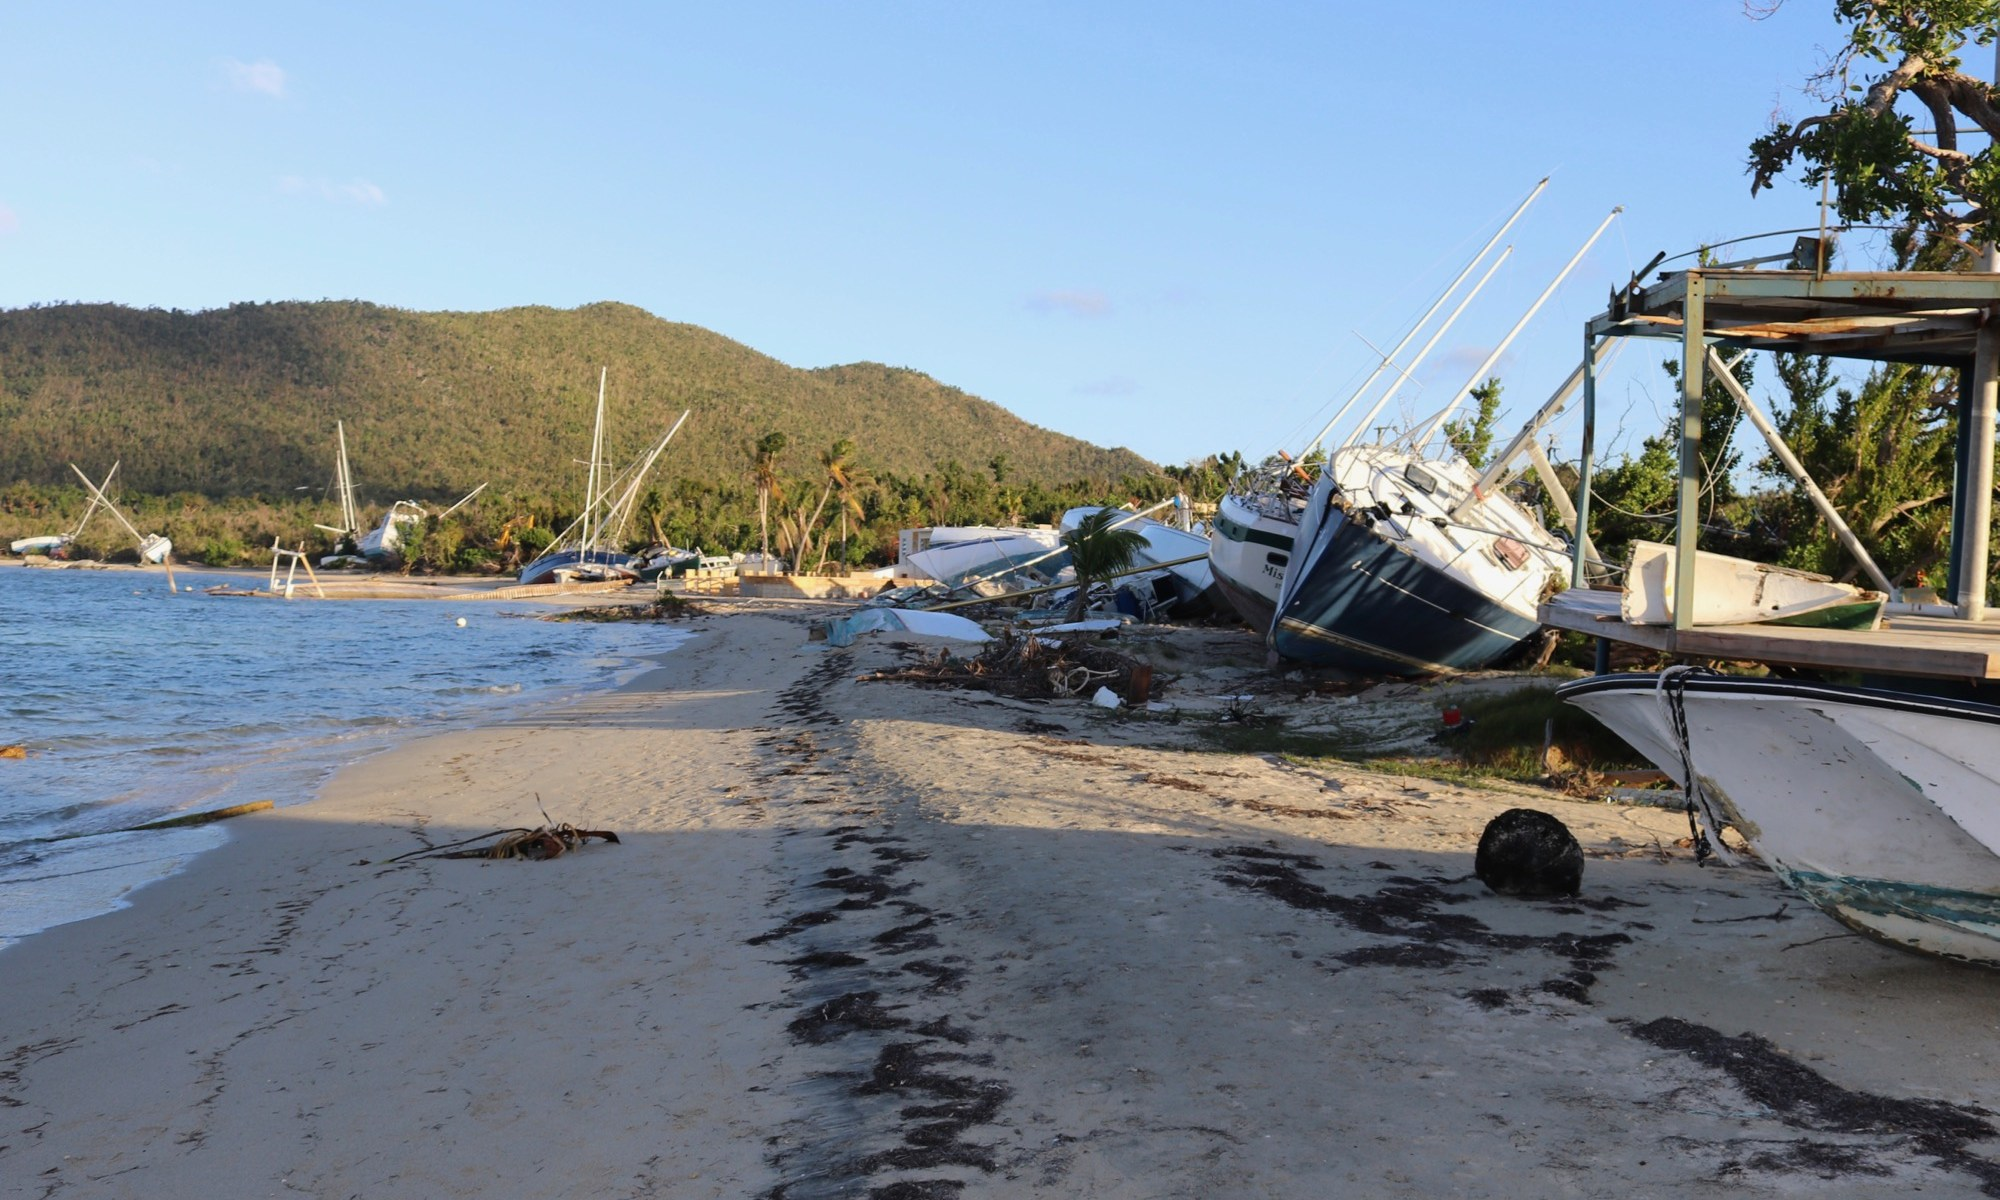 Hurricane Irma destroys boats in Trellis Bay Tortola